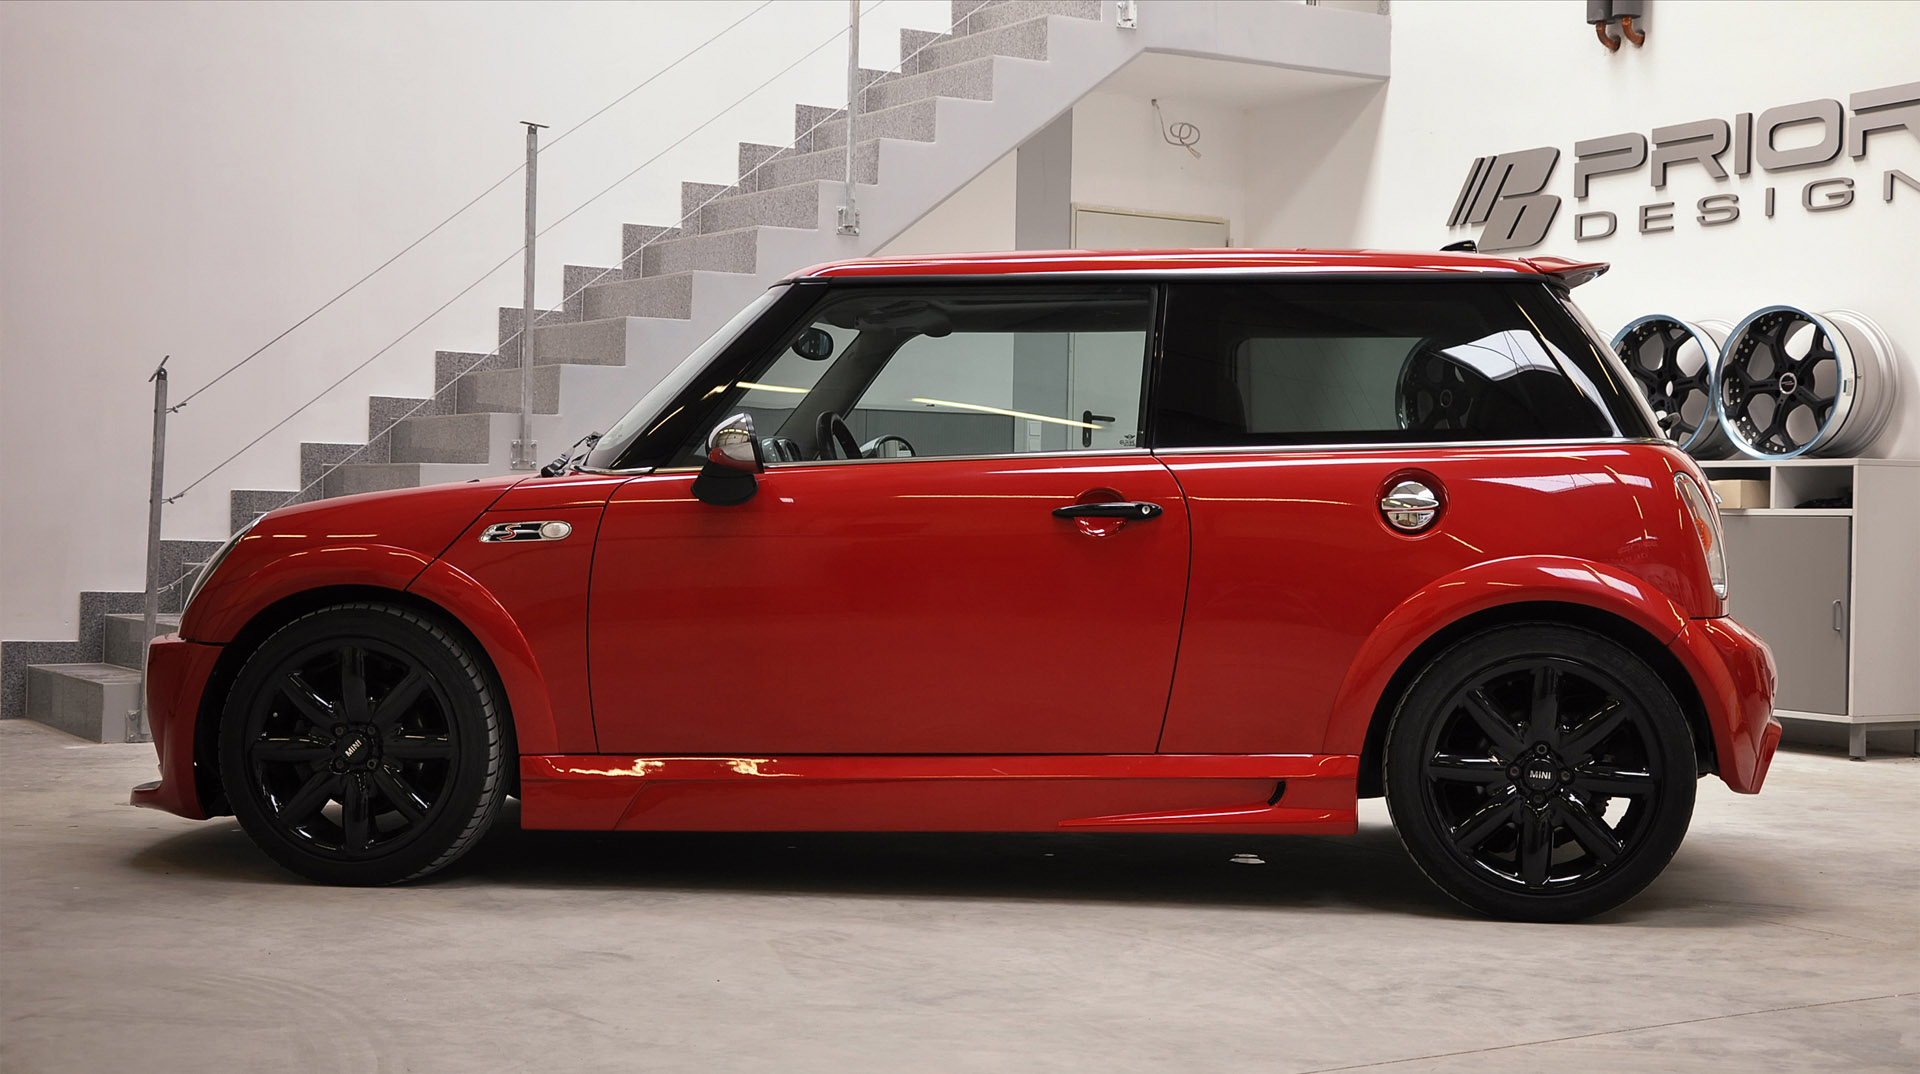 Prior Design Mini Cooper S Bodykit Picture 23746 HD Wallpapers Download free images and photos [musssic.tk]